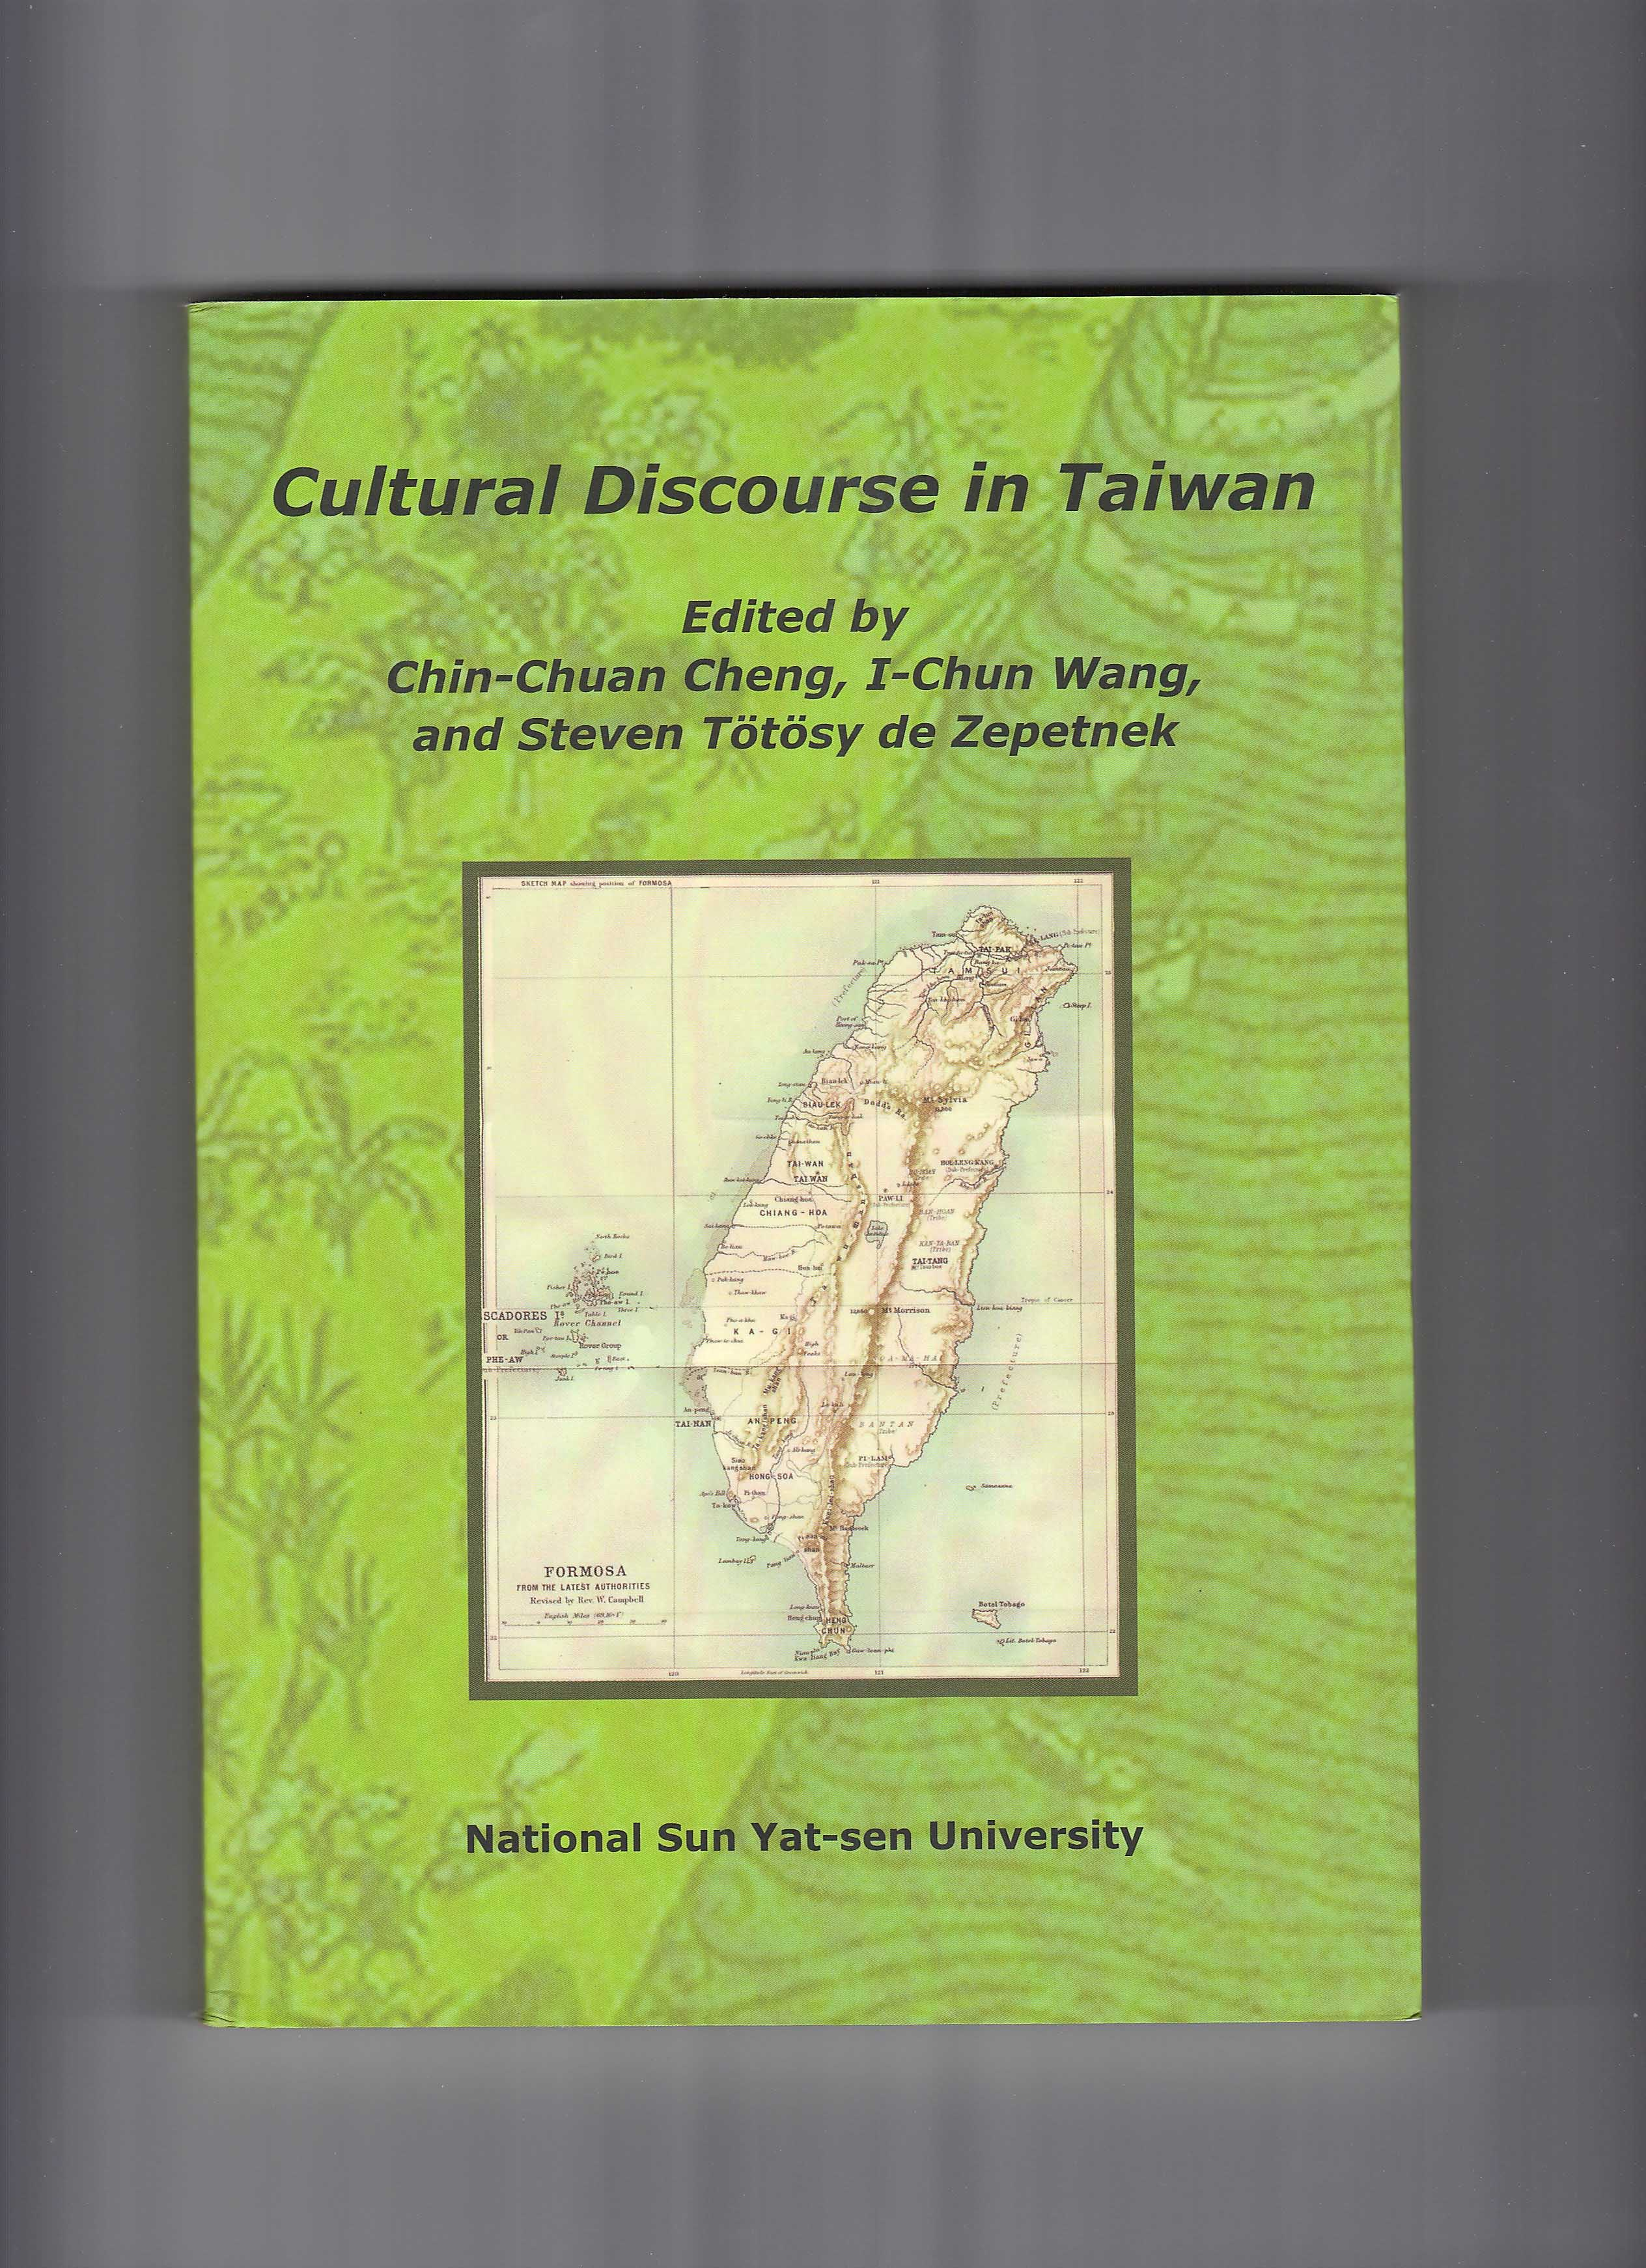 Cultural Discourse in Taiwan. Ed. Chin-Chuan Cheng, I-Chun Wang and Steven T�t�sy de Zepetnek. Kaohsiung: National Sun Yat-sen University Press, 2010.